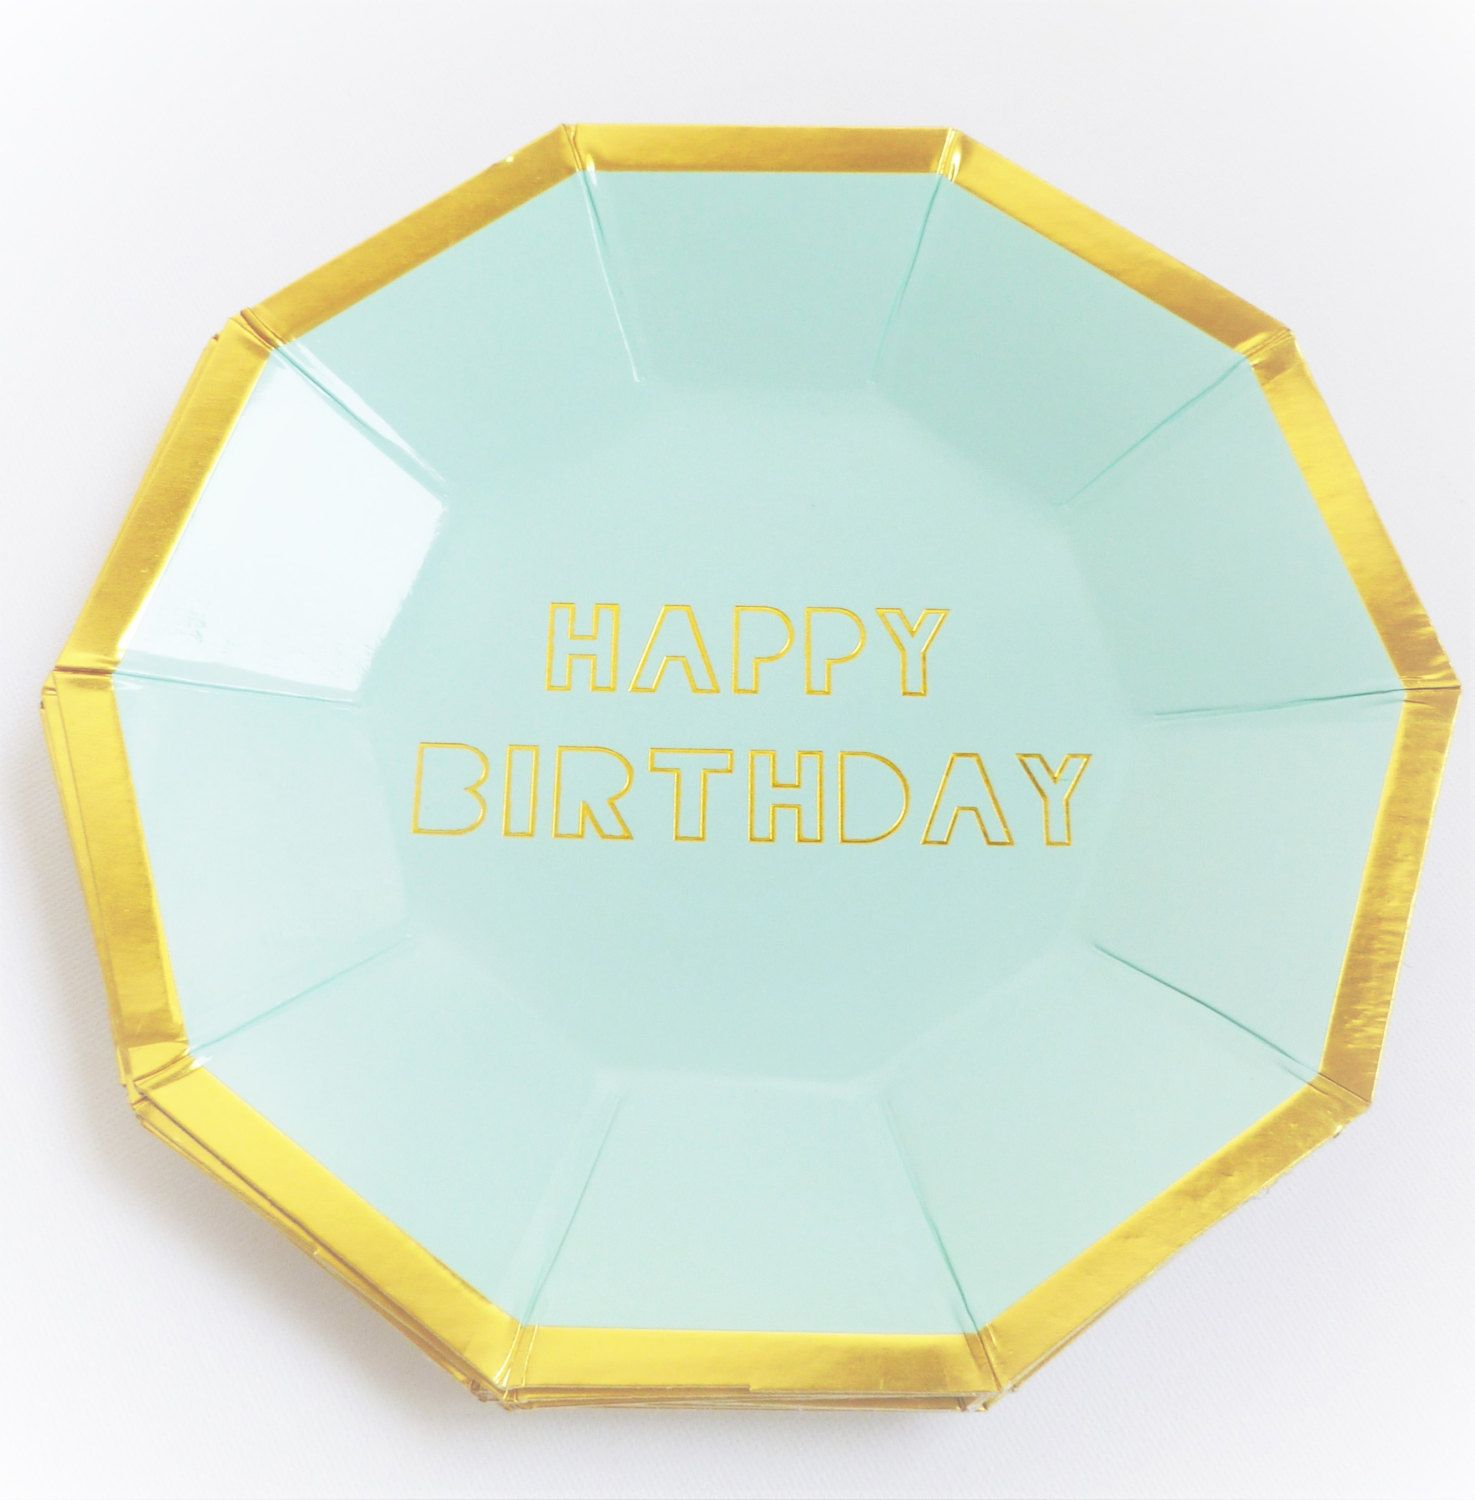 8 x Mint and Gold foil Happy Birthday Paper Plates - Afternoon Tea childrens - Hexagon Birthday party first birthday boy girl metallic  sc 1 st  Pinterest & 8 x Mint and Gold foil Happy Birthday Paper Plates - Afternoon Tea ...